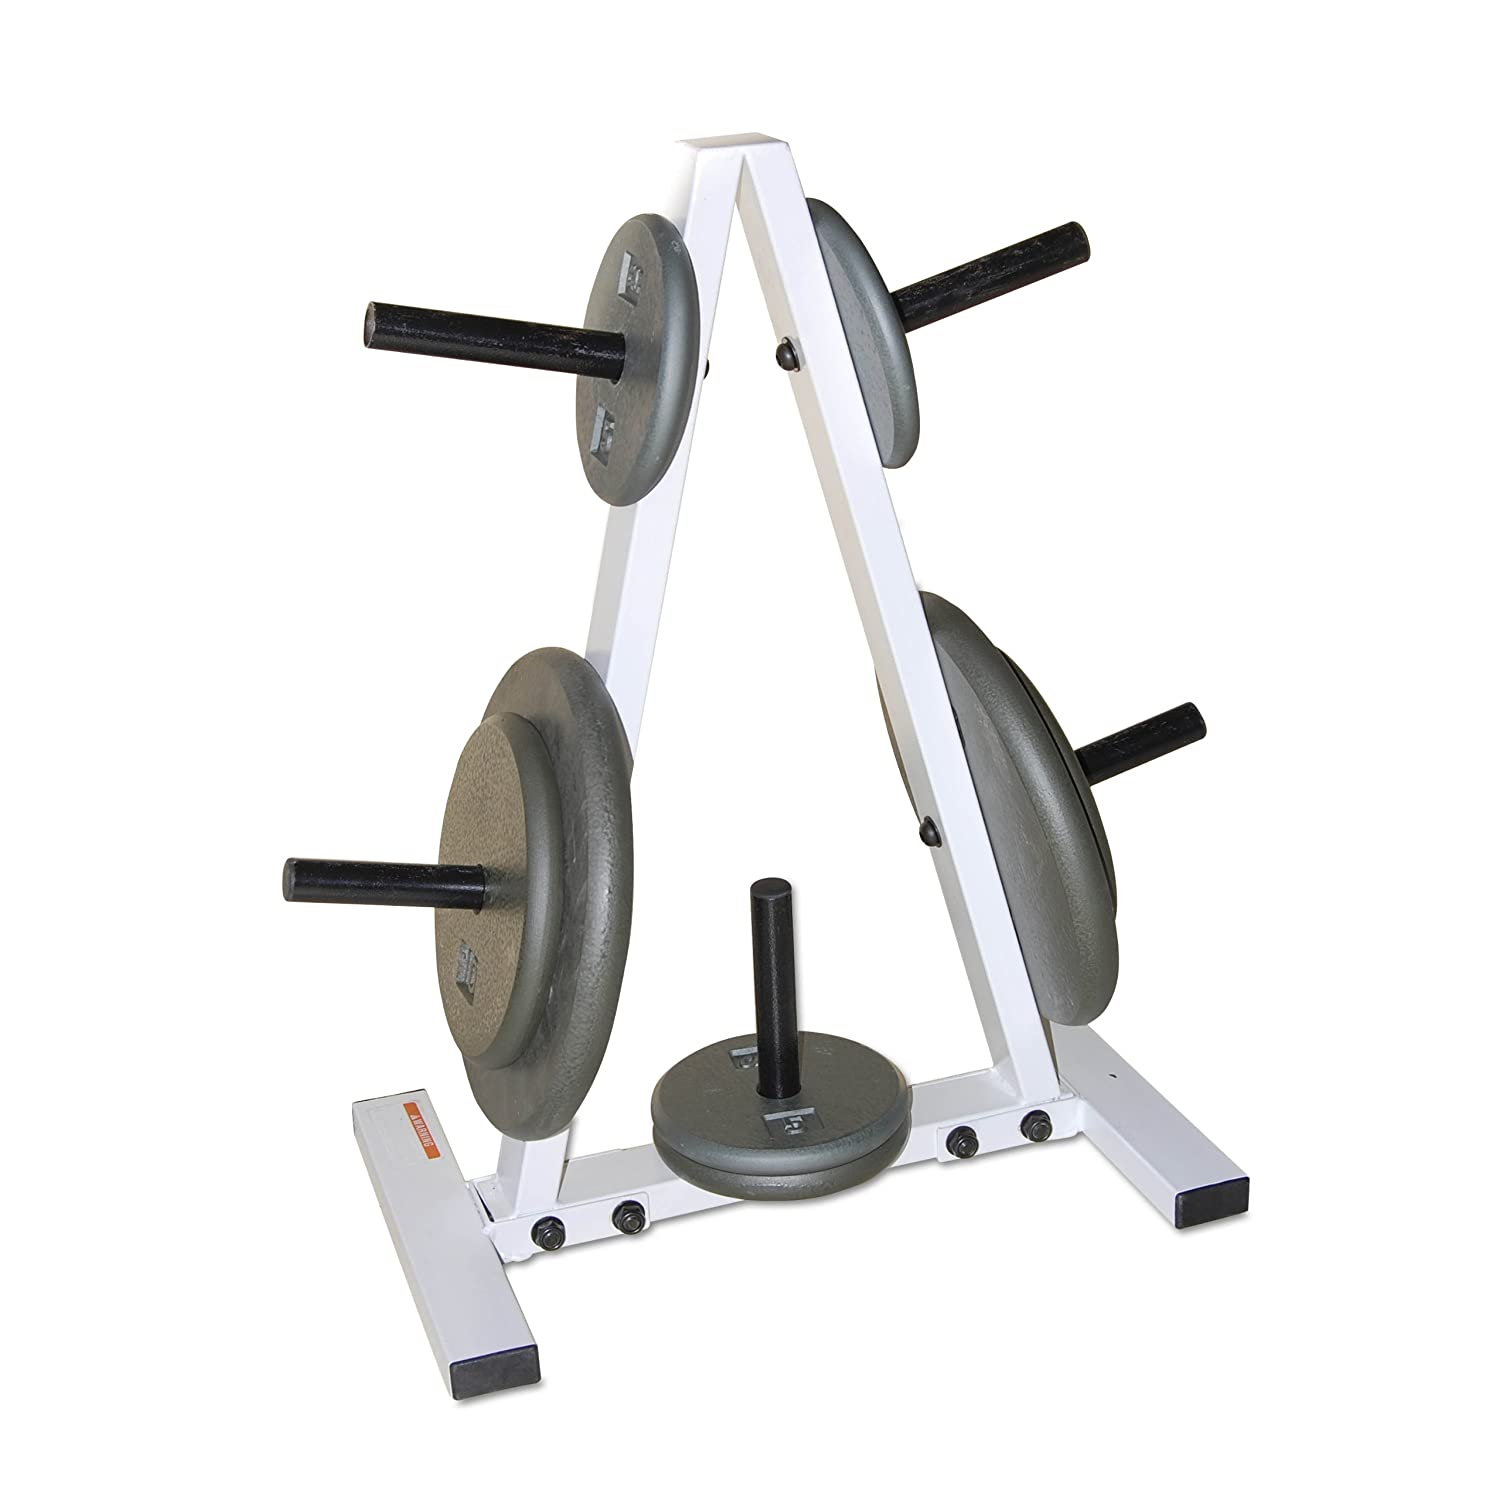 Amazon.com  CAP Barbell Standard Plate Rack Black and White 1   Plate Trees  Sports u0026 Outdoors  sc 1 st  Amazon.com & Amazon.com : CAP Barbell Standard Plate Rack Black and White 1 ...